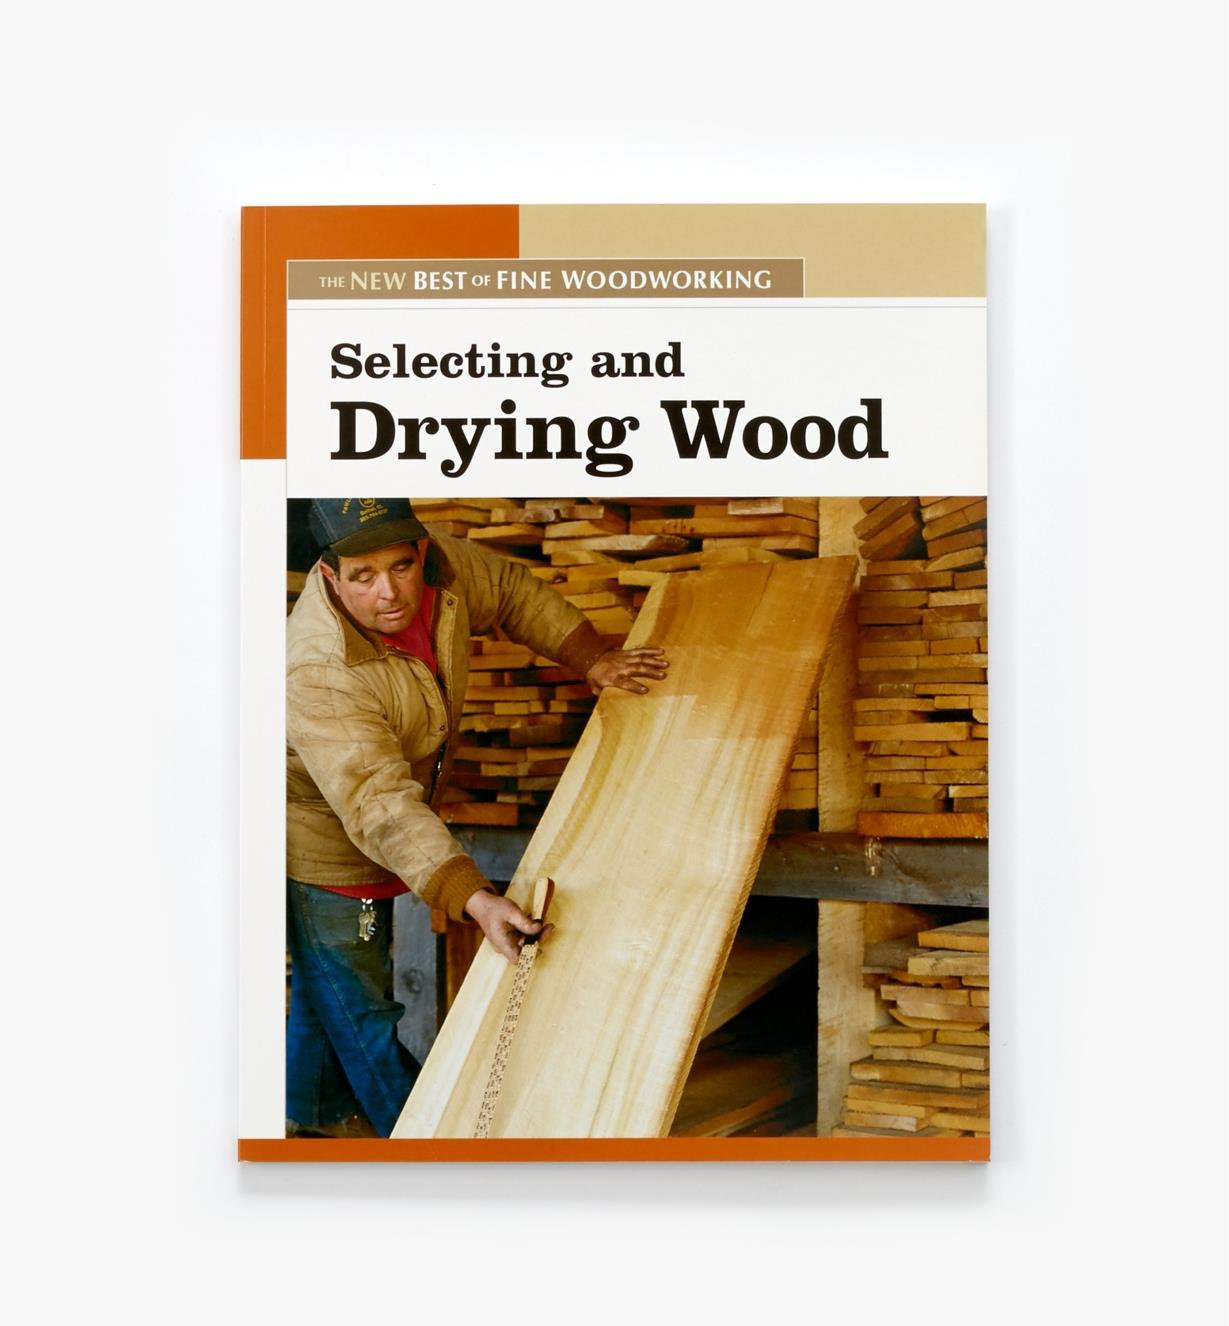 73L0274 - Selecting and Drying Wood